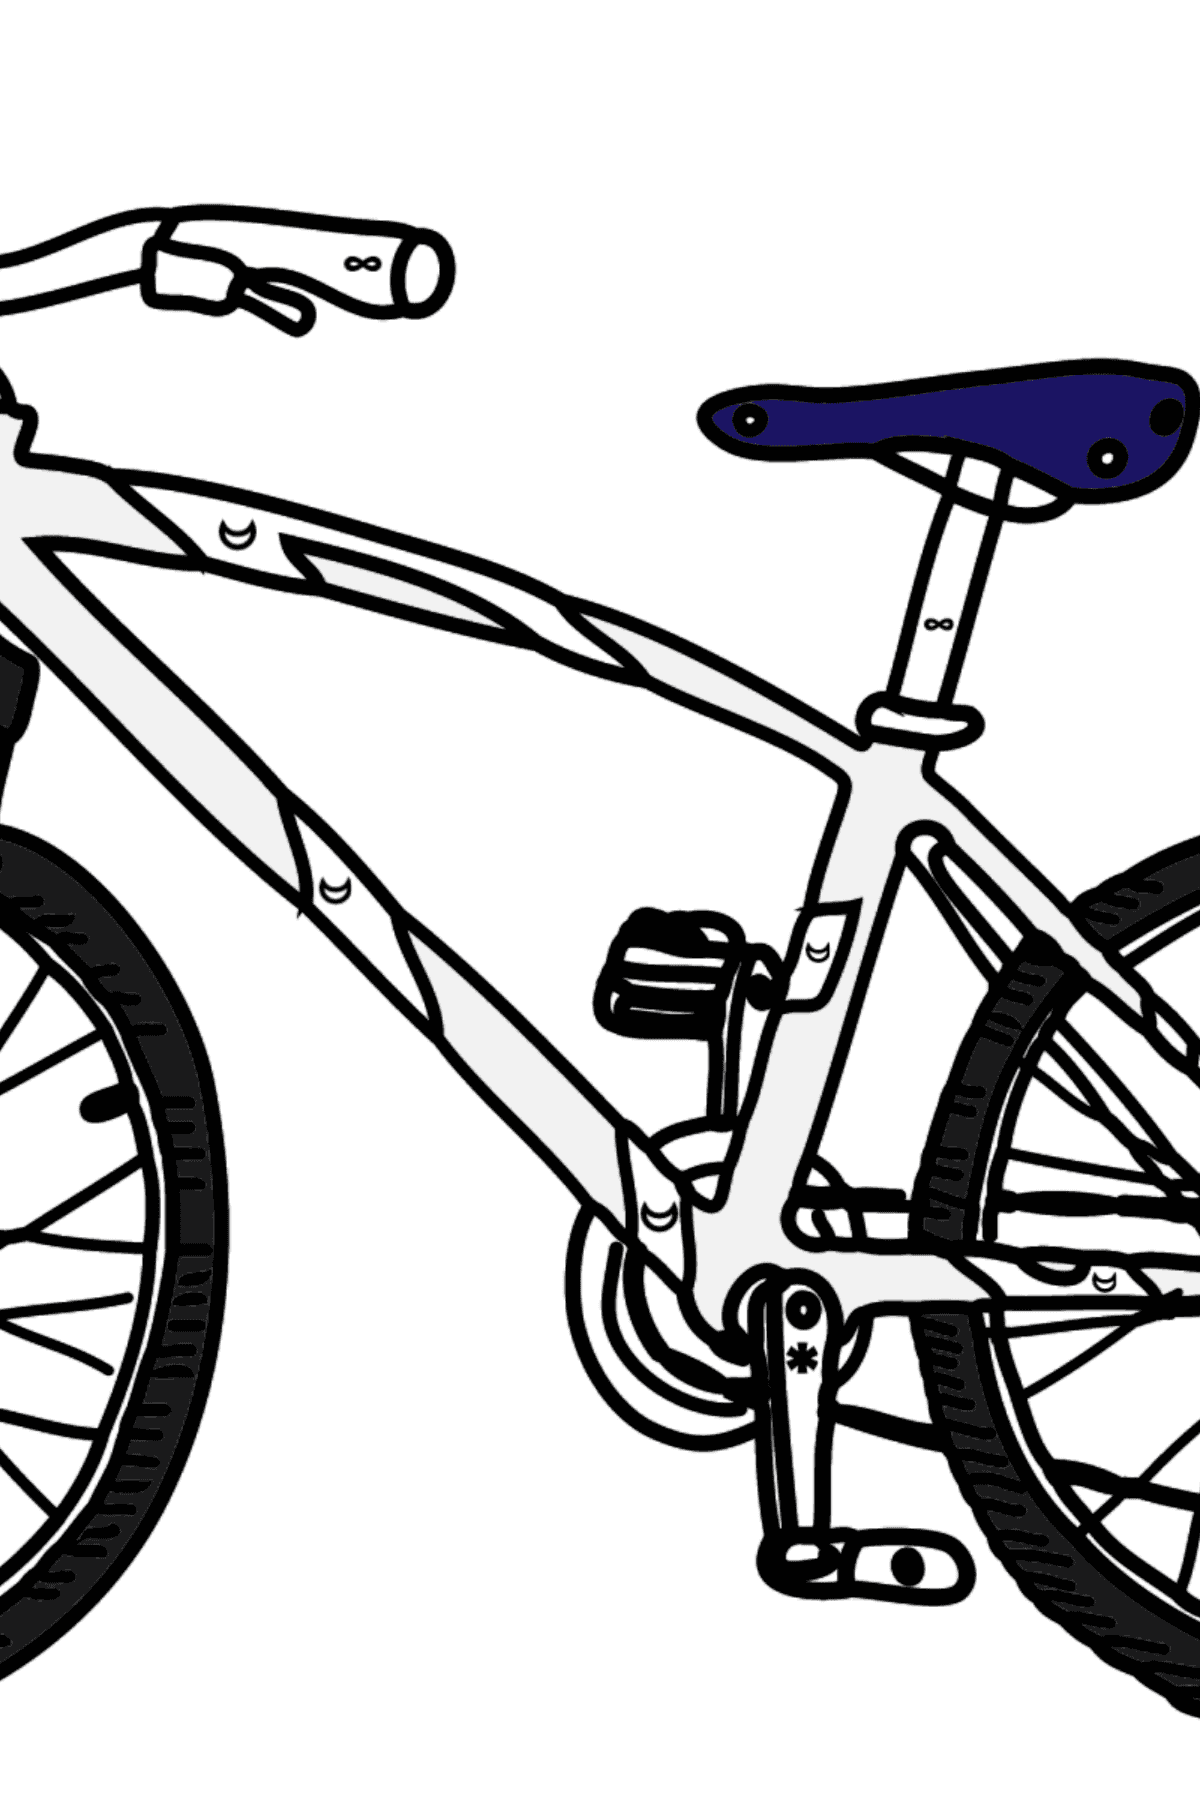 Coloring Page - A Sport Bike - Coloring by Symbols and Geometric Shapes for Kids